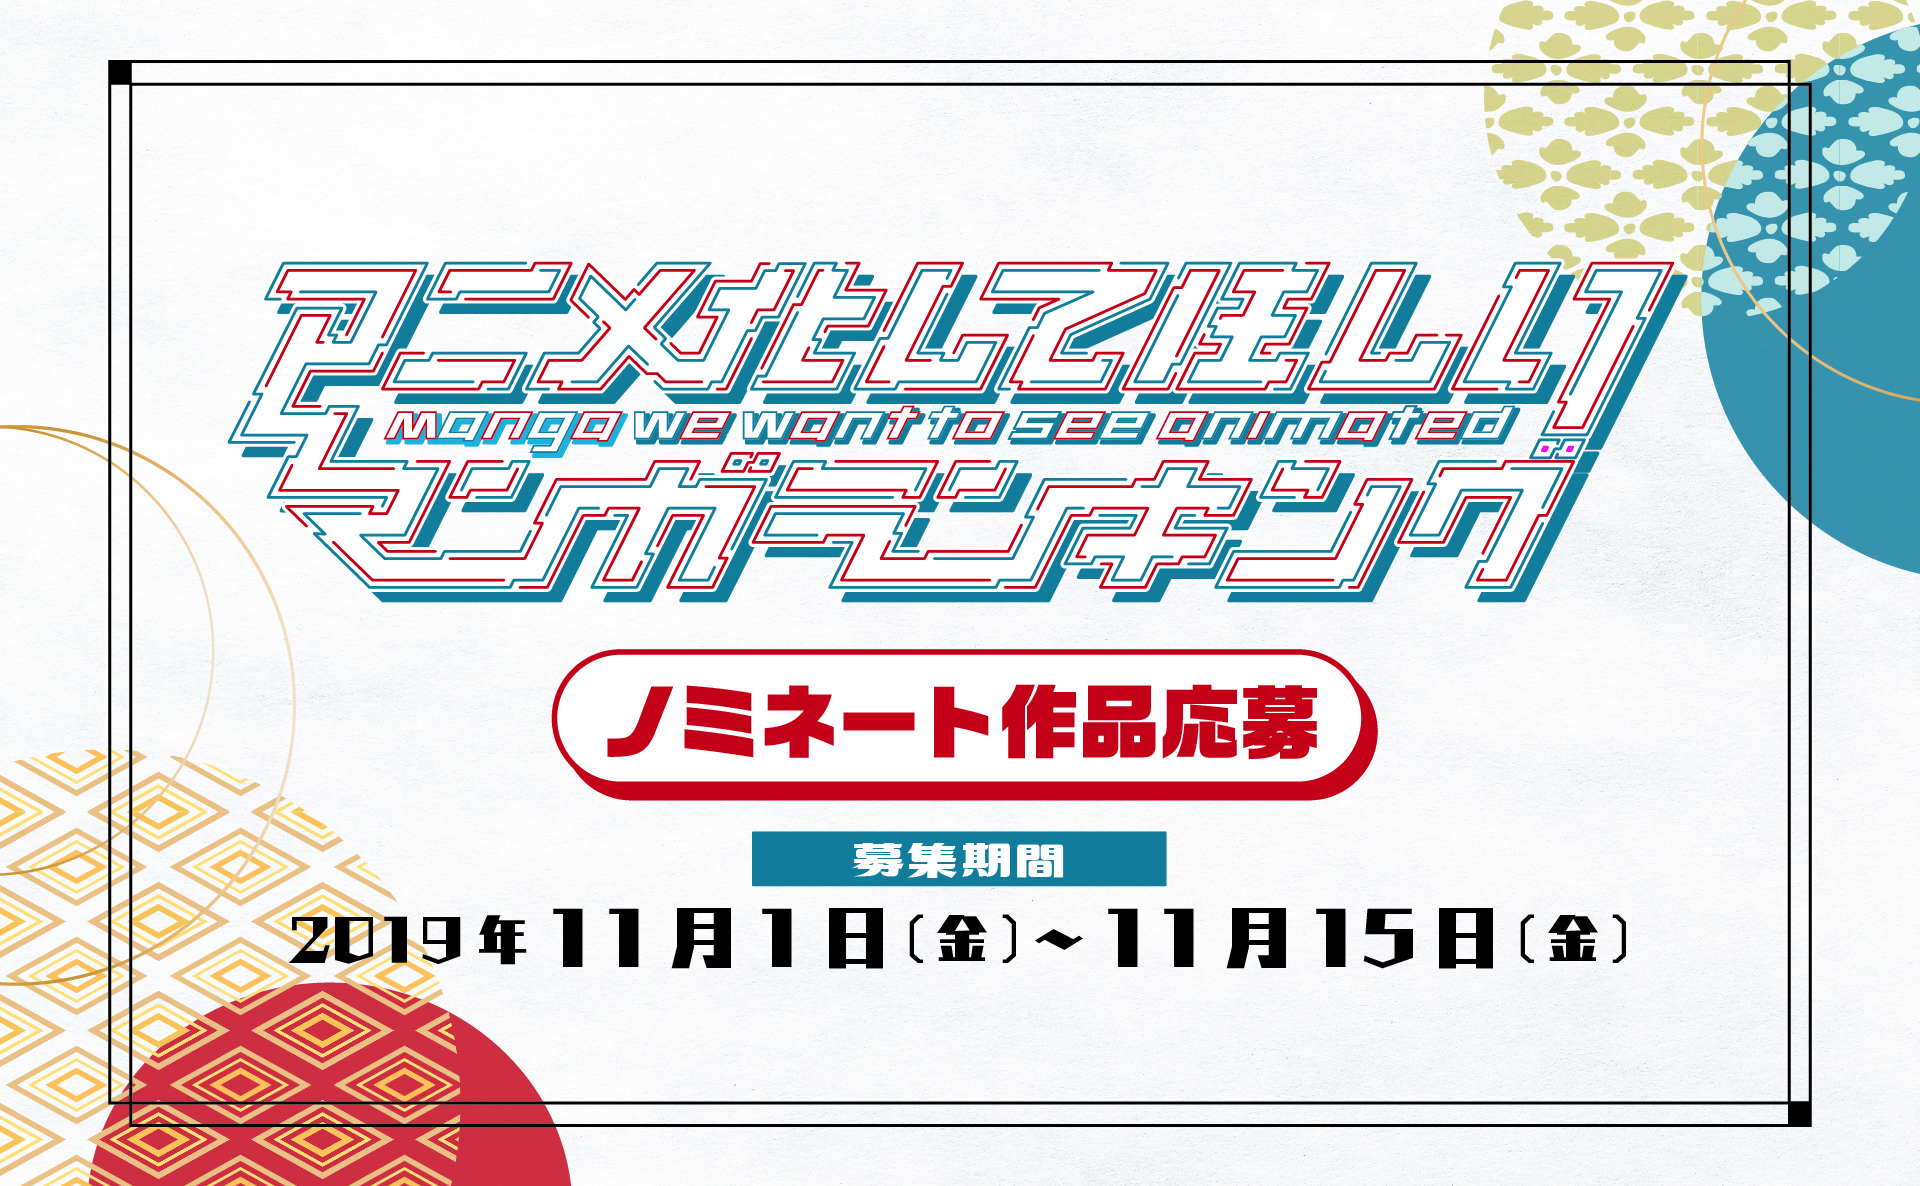 5th anniversary for AnimeJapan 2018!!